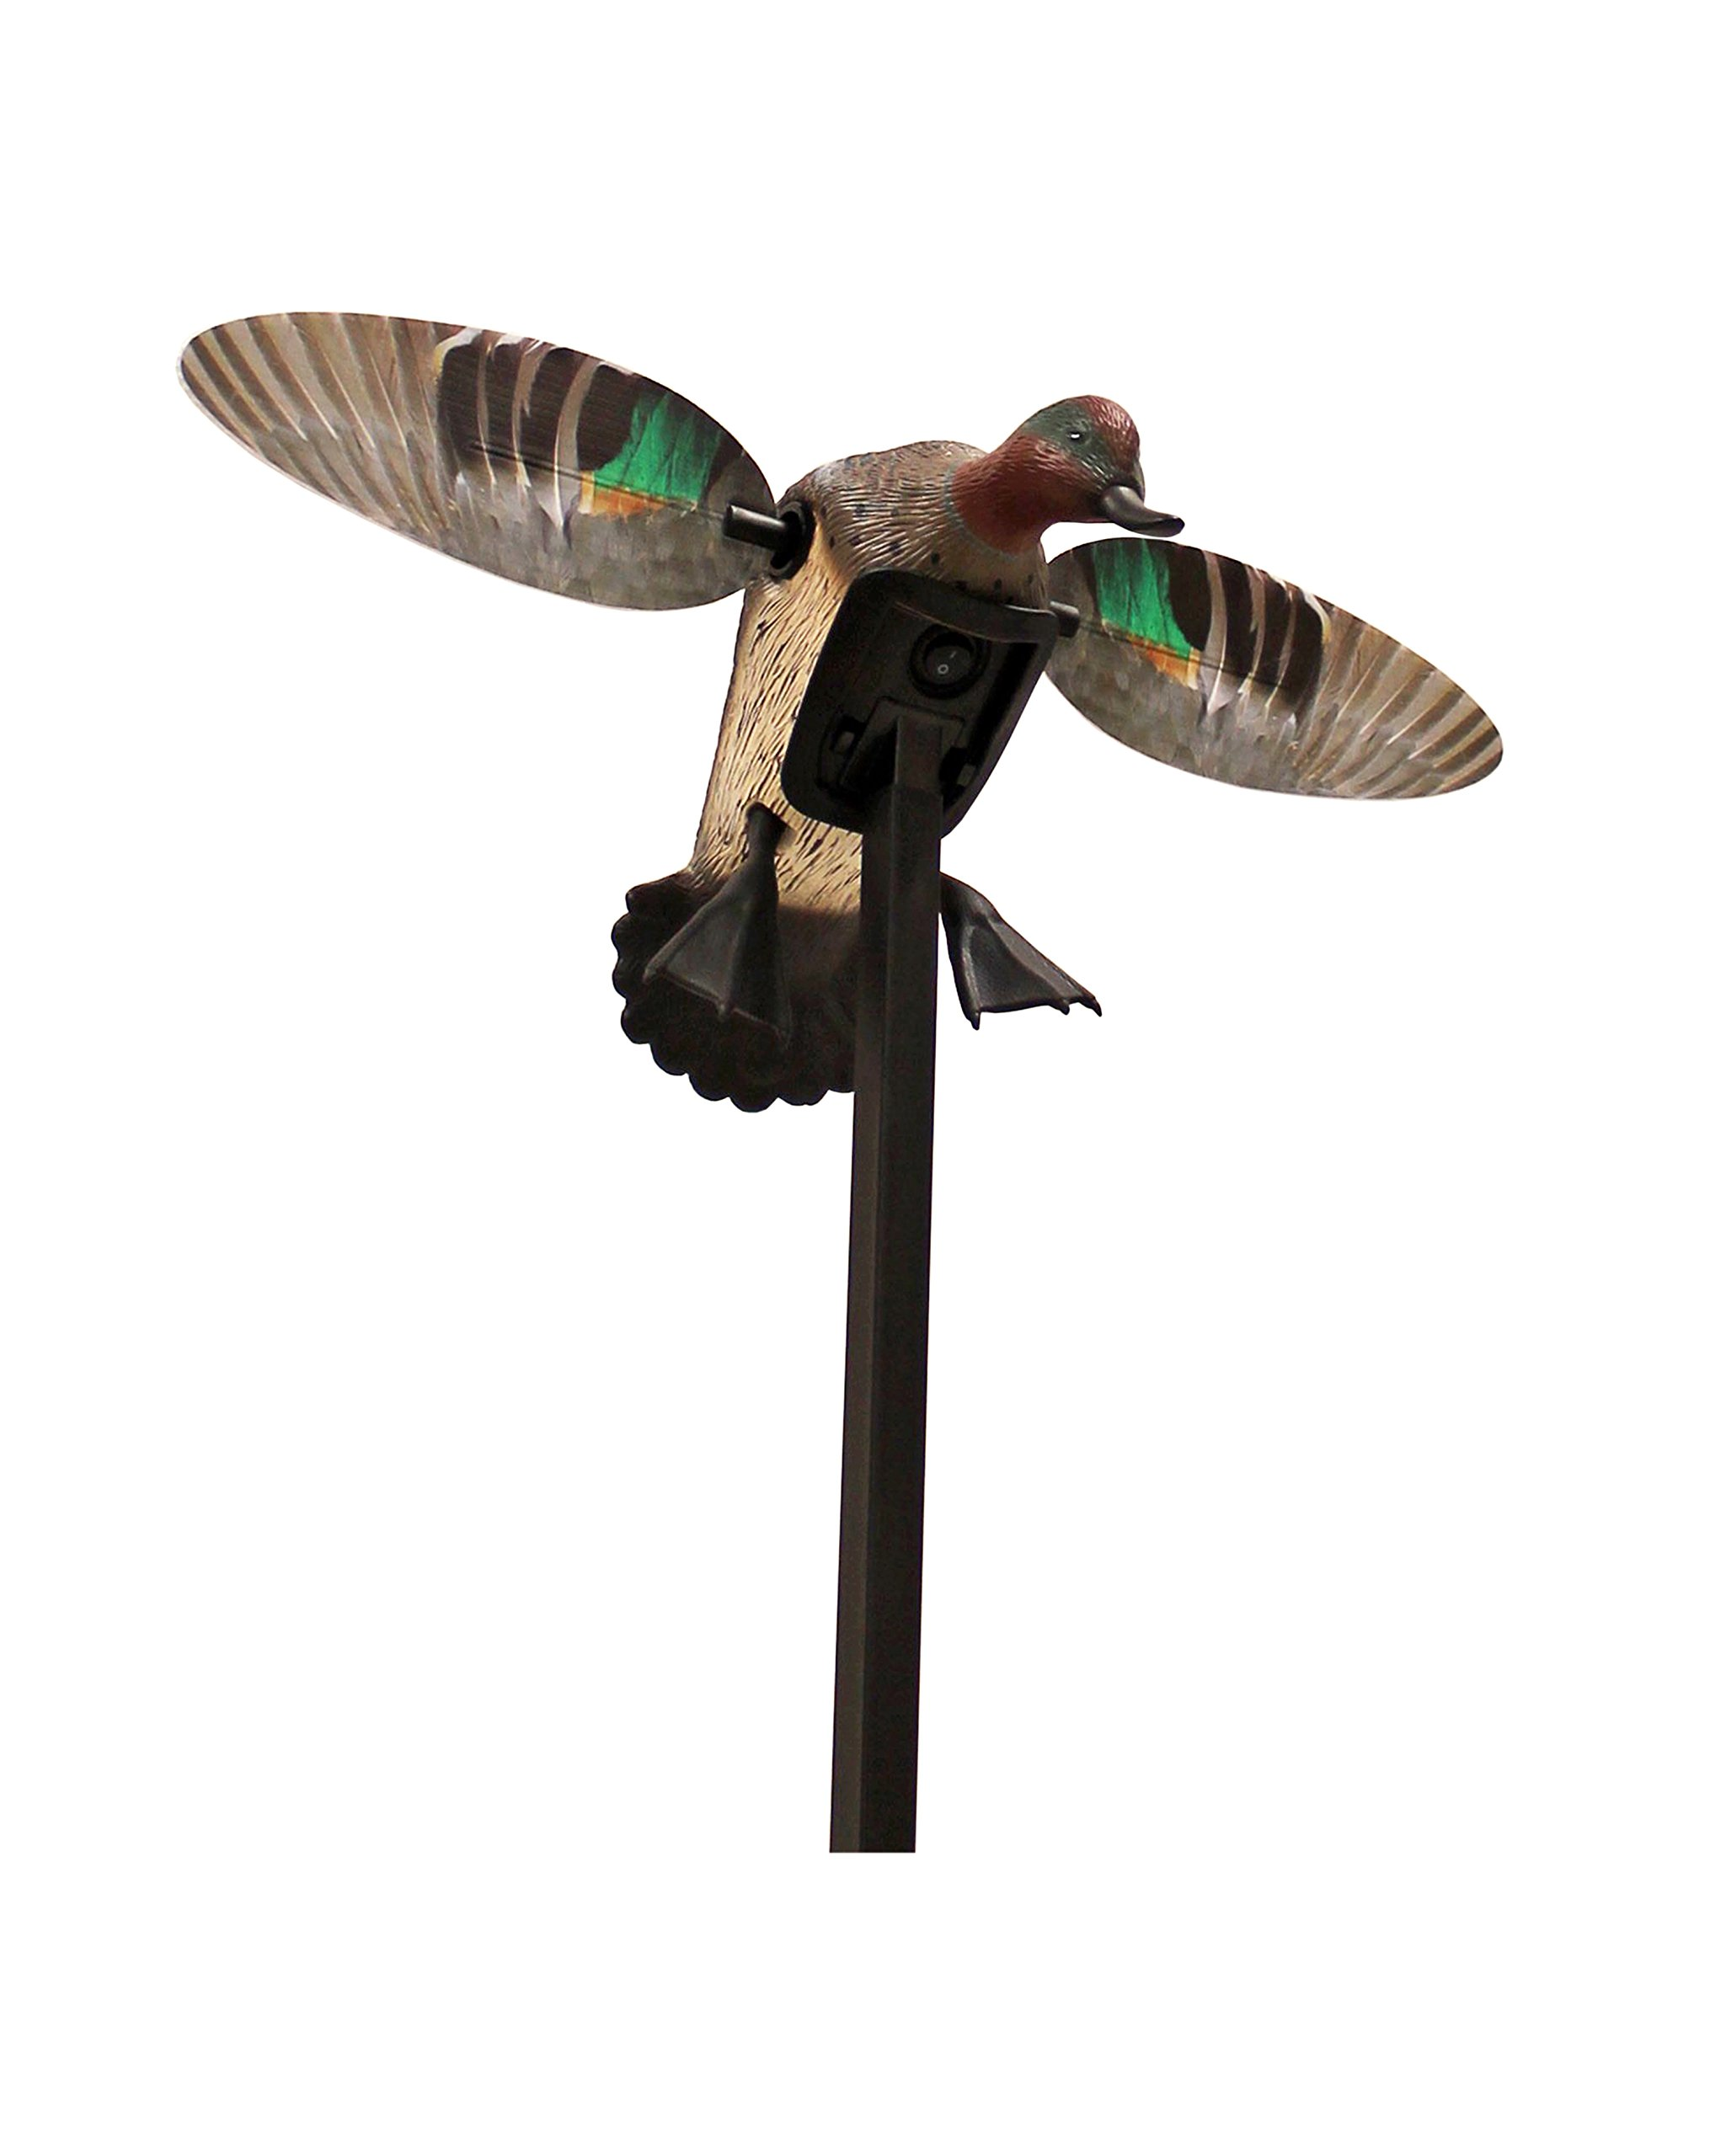 MOJO Outdoors Elite Series Duck Hunting Motion Decoy, Green Wing Teal (New) by MOJO Outdoors